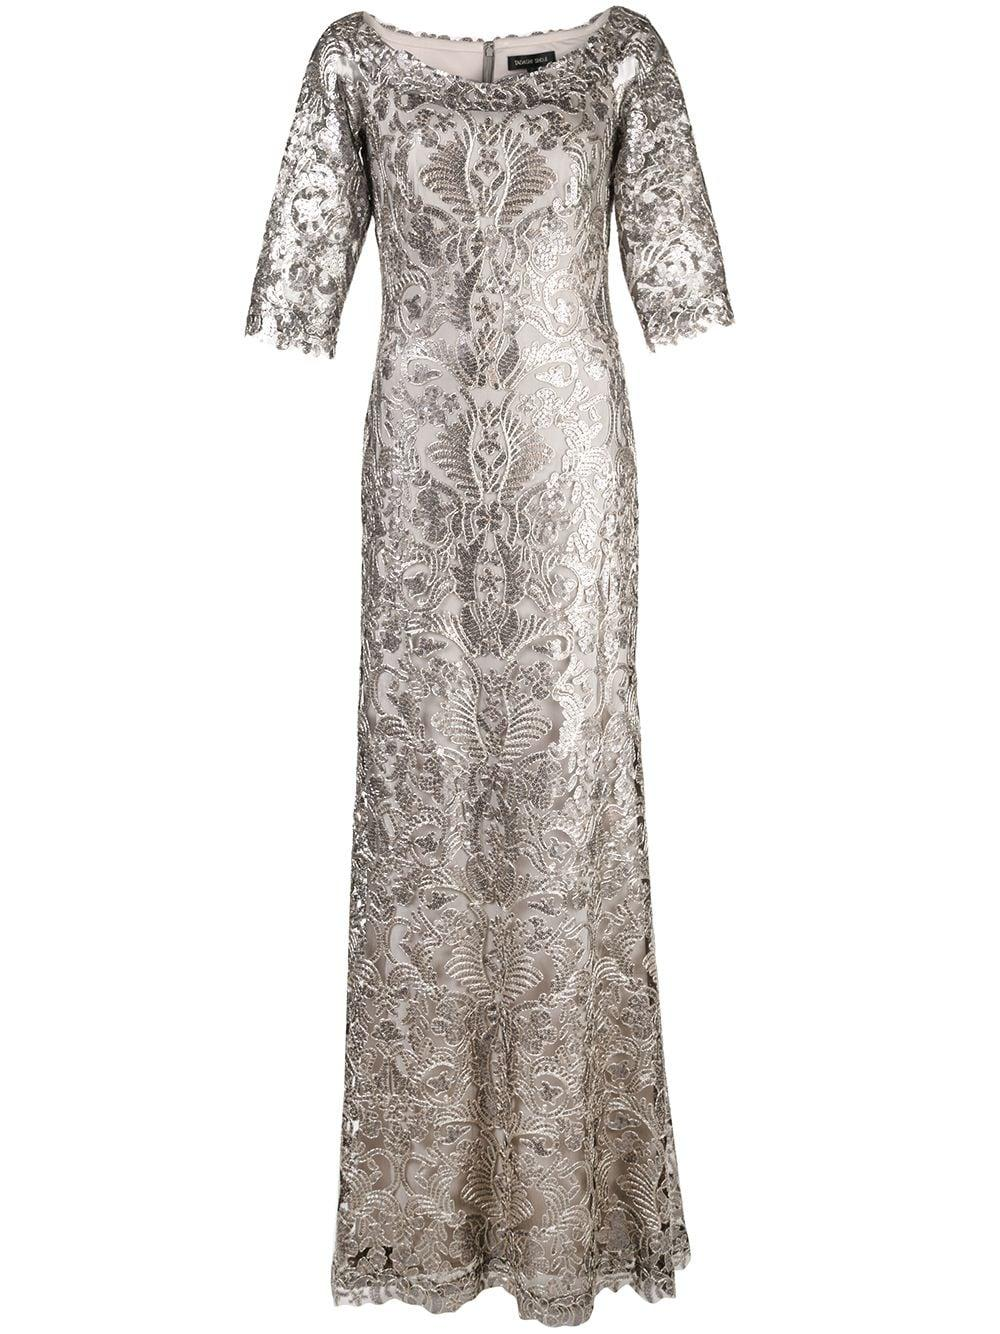 Scoop Neck 3/4 Sleeve Lace Shimmer Gown Item # ATV18236L